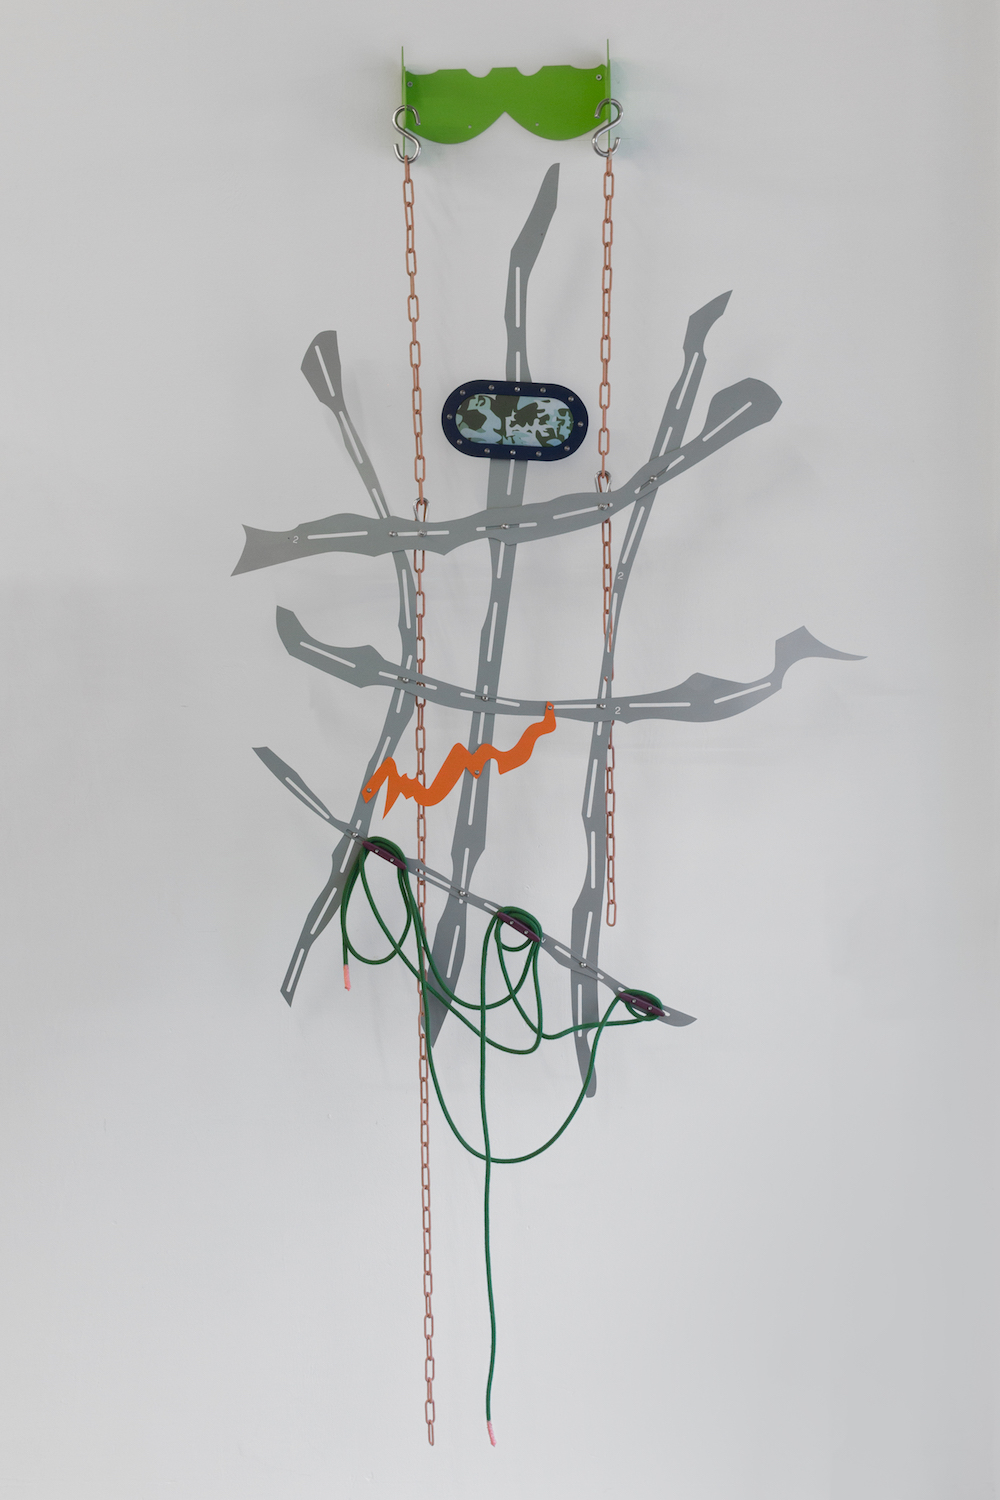 Hanae Wilke, Wind Flower, 2018. Steel, digitally printed fabric, plastic, powder coated steel chain, rope, silicone rubber, aerosol paint. 152 x 93 x 18.5 cm.